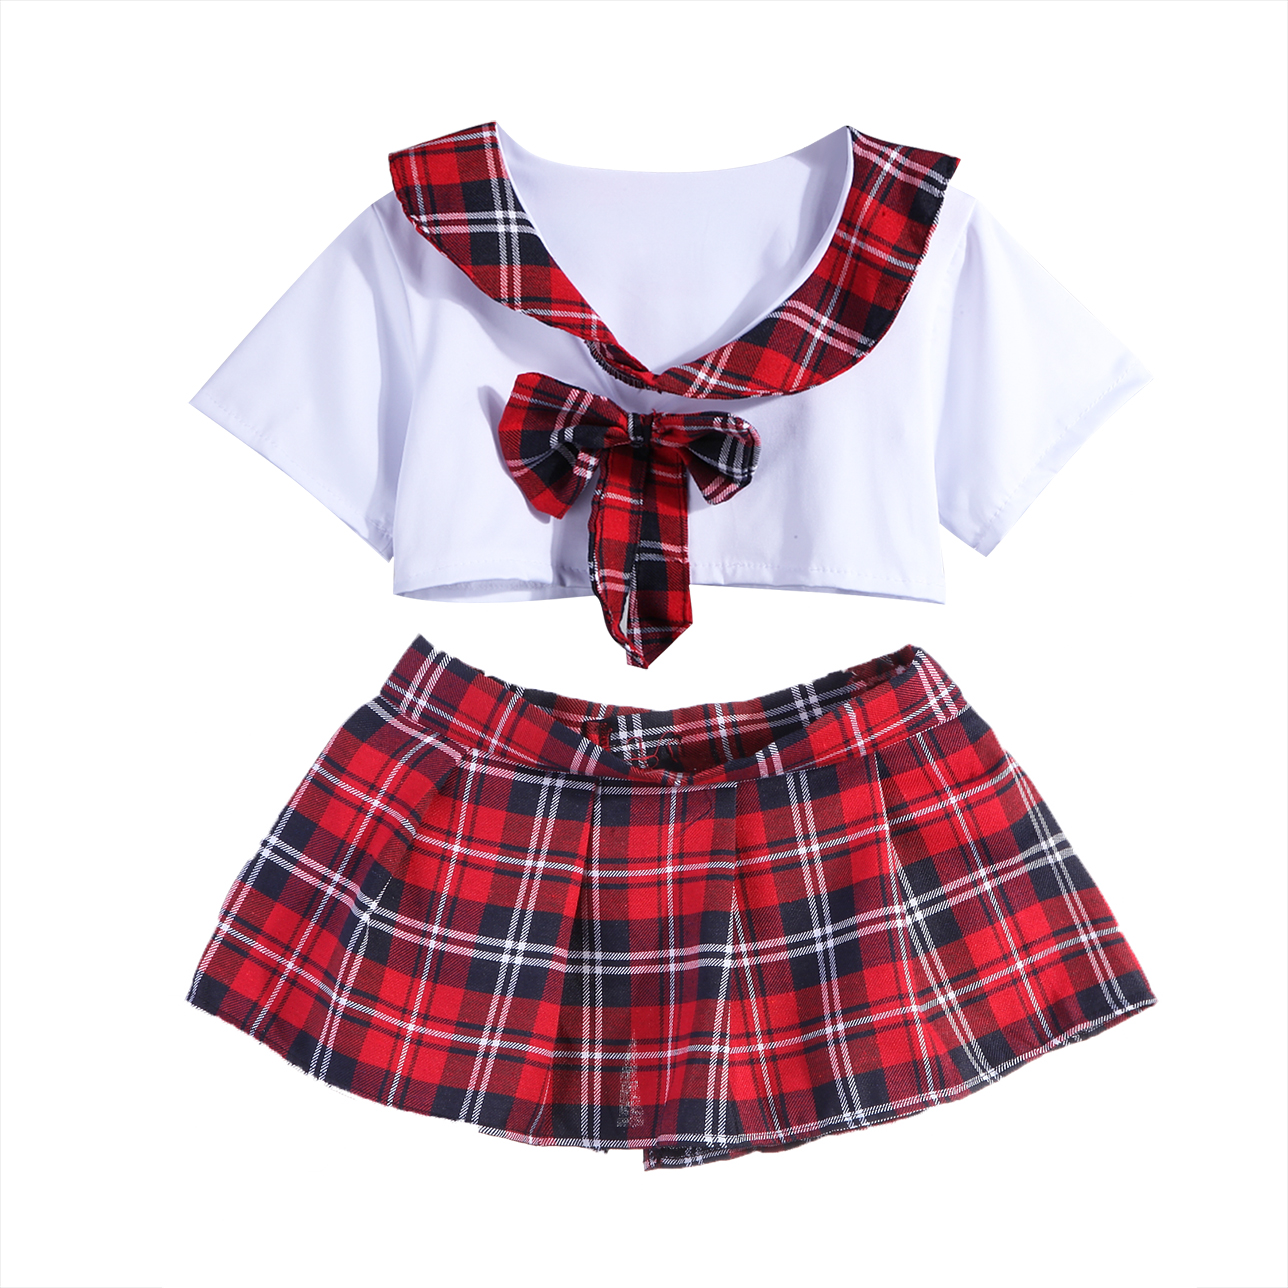 08c49bb2f Detail Feedback Questions about New Women Sexy Lingerie 2pcs Classic School  Girl Outfit Costume dress uniform Chemise outfit on Aliexpress.com    alibaba ...